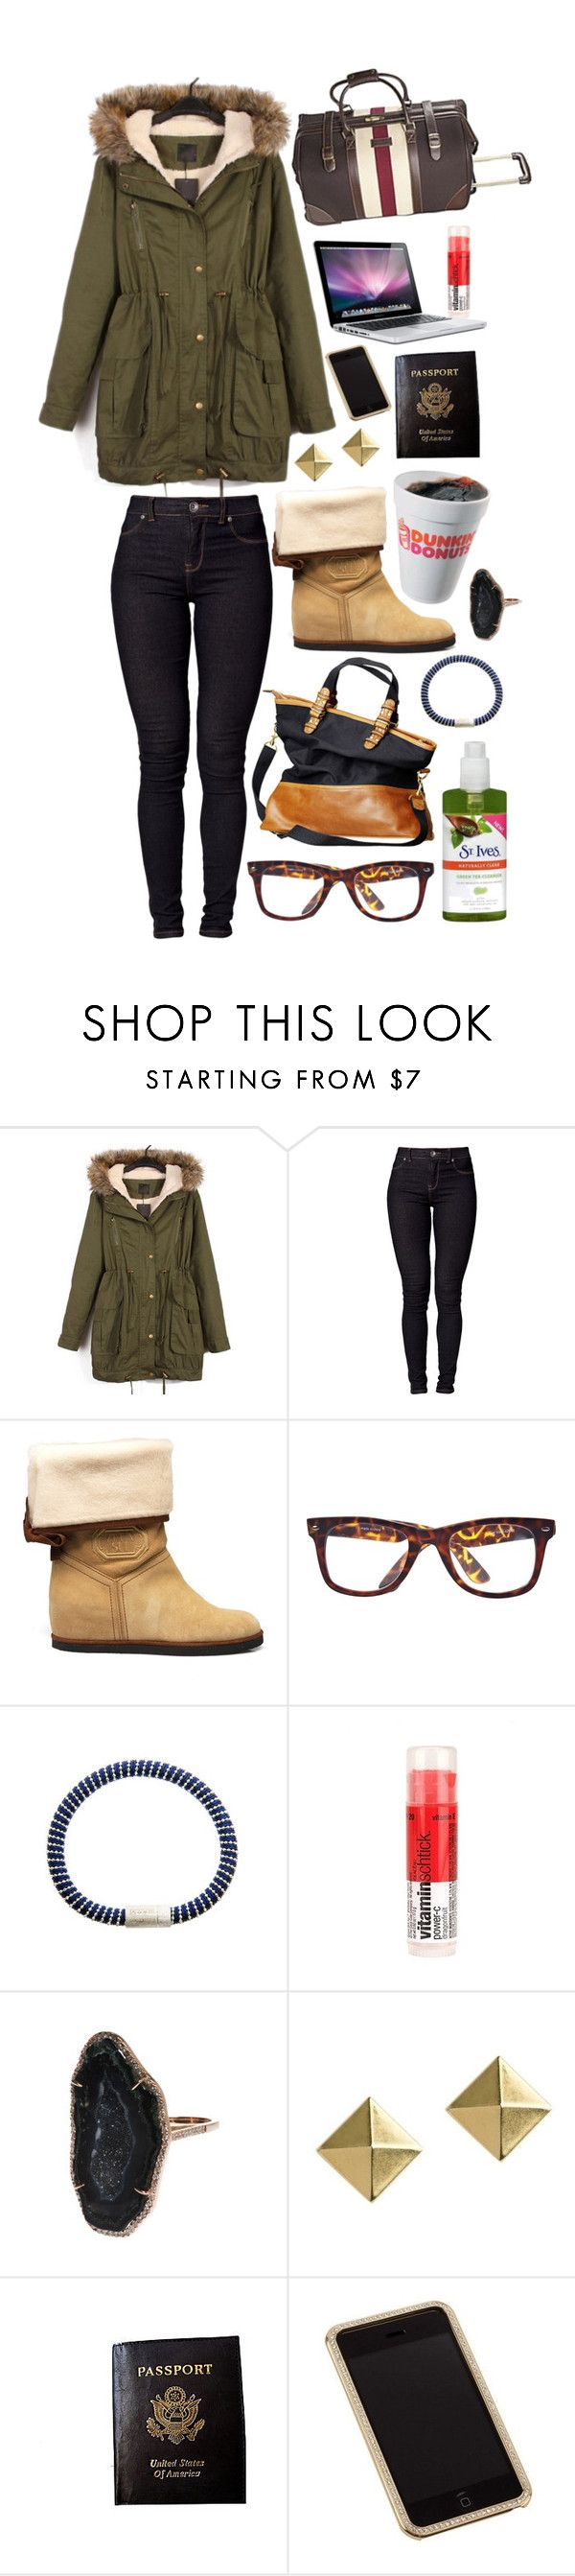 """Winter Travelling"" by brooklynrebelle ❤ liked on Polyvore featuring Dr. Denim, Anna Sui, H&M, River Island, St. Ives, Carolina Bucci, Urban Outfitters, Kimberly McDonald, H! by Henry Holland and Passport"